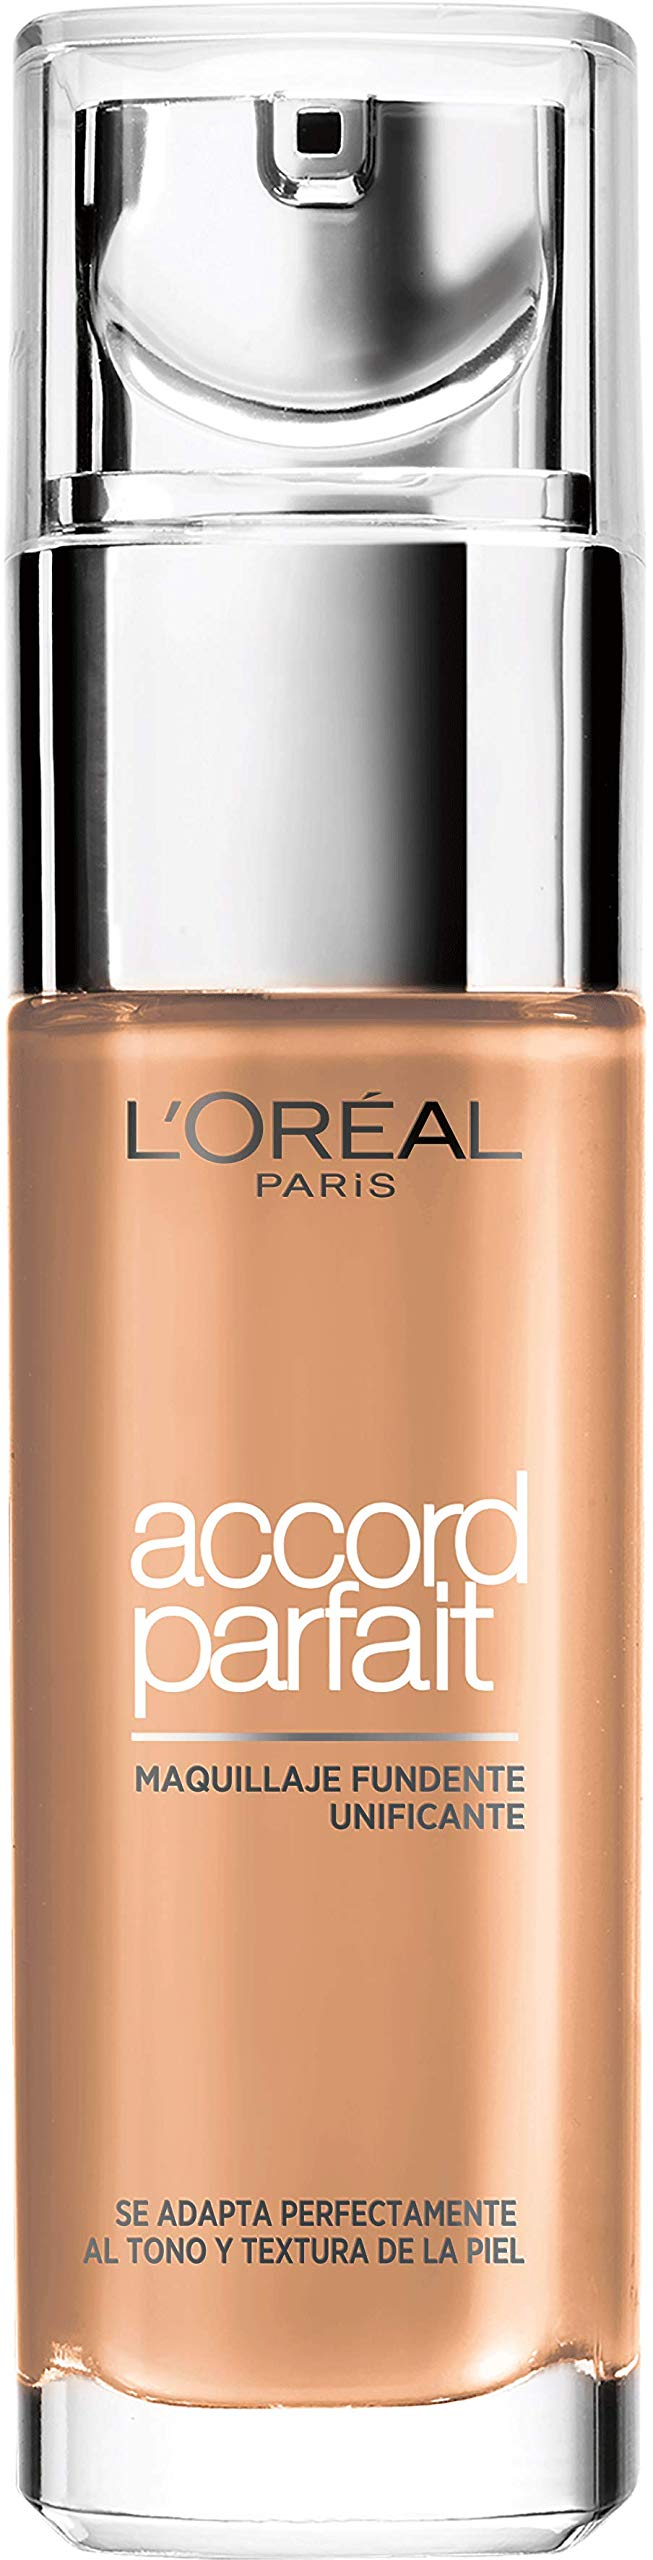 LOreal Paris Make-up Designer Accord Parfait Base de Maquillaje con Acabado Natural